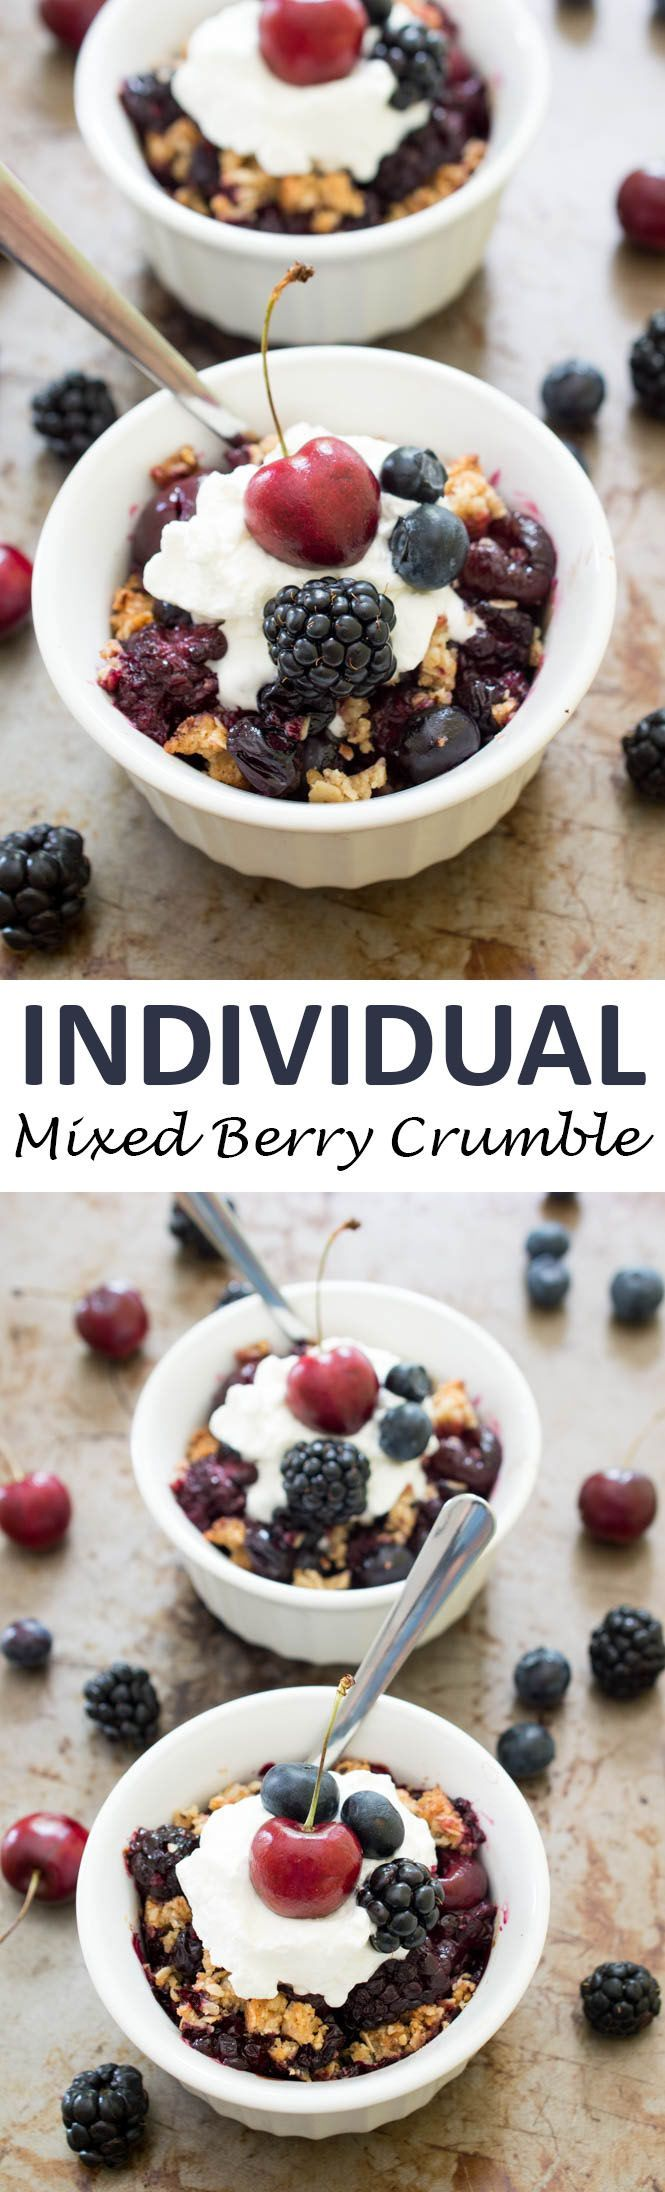 Individual Mixed Berry Crisp loaded with fresh cherries, blackberries ...